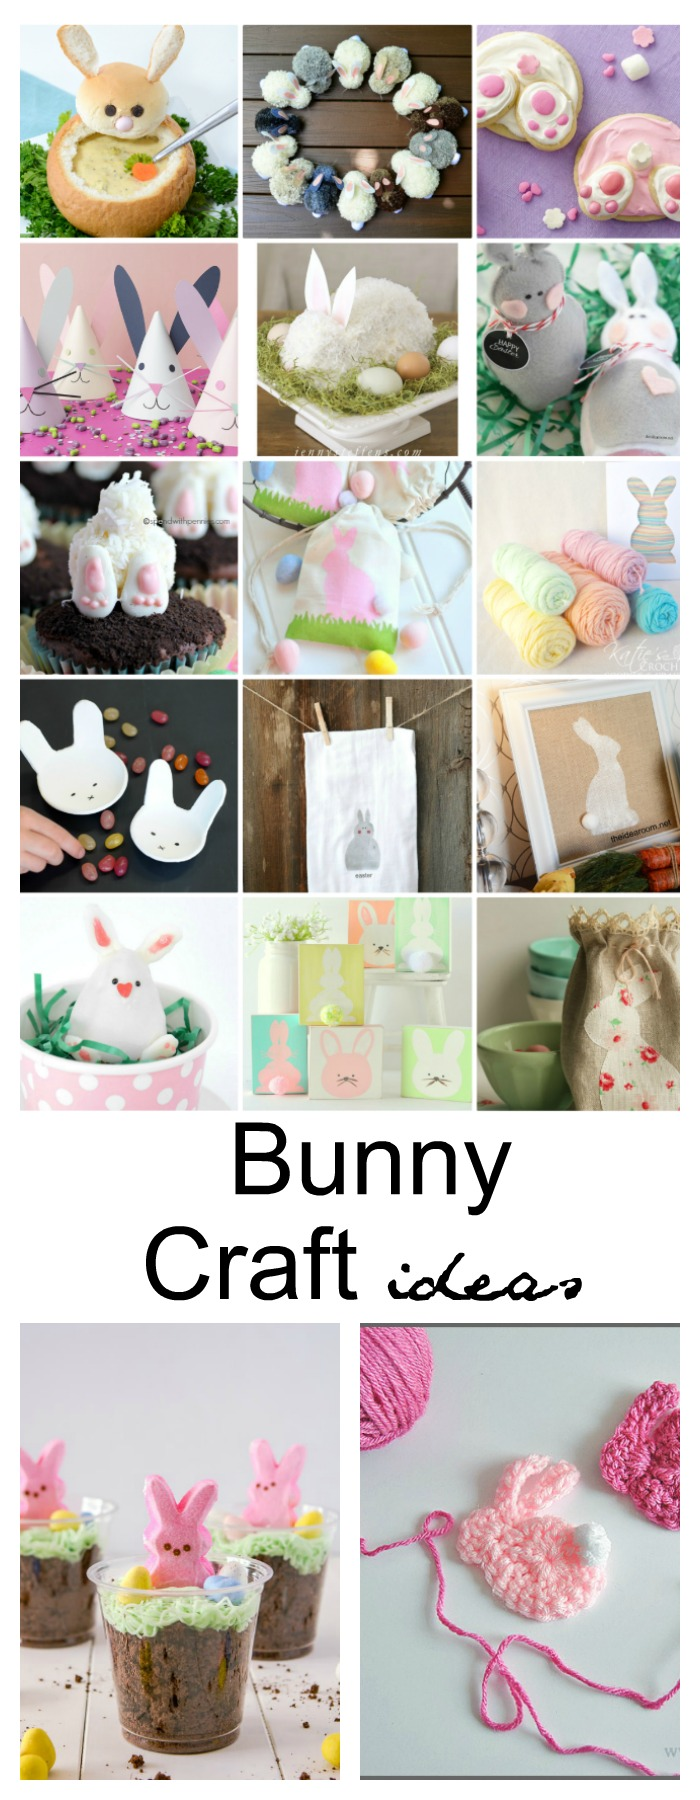 Bunny-Craft-Ideas-Activities-Treat-Crafts-Pin